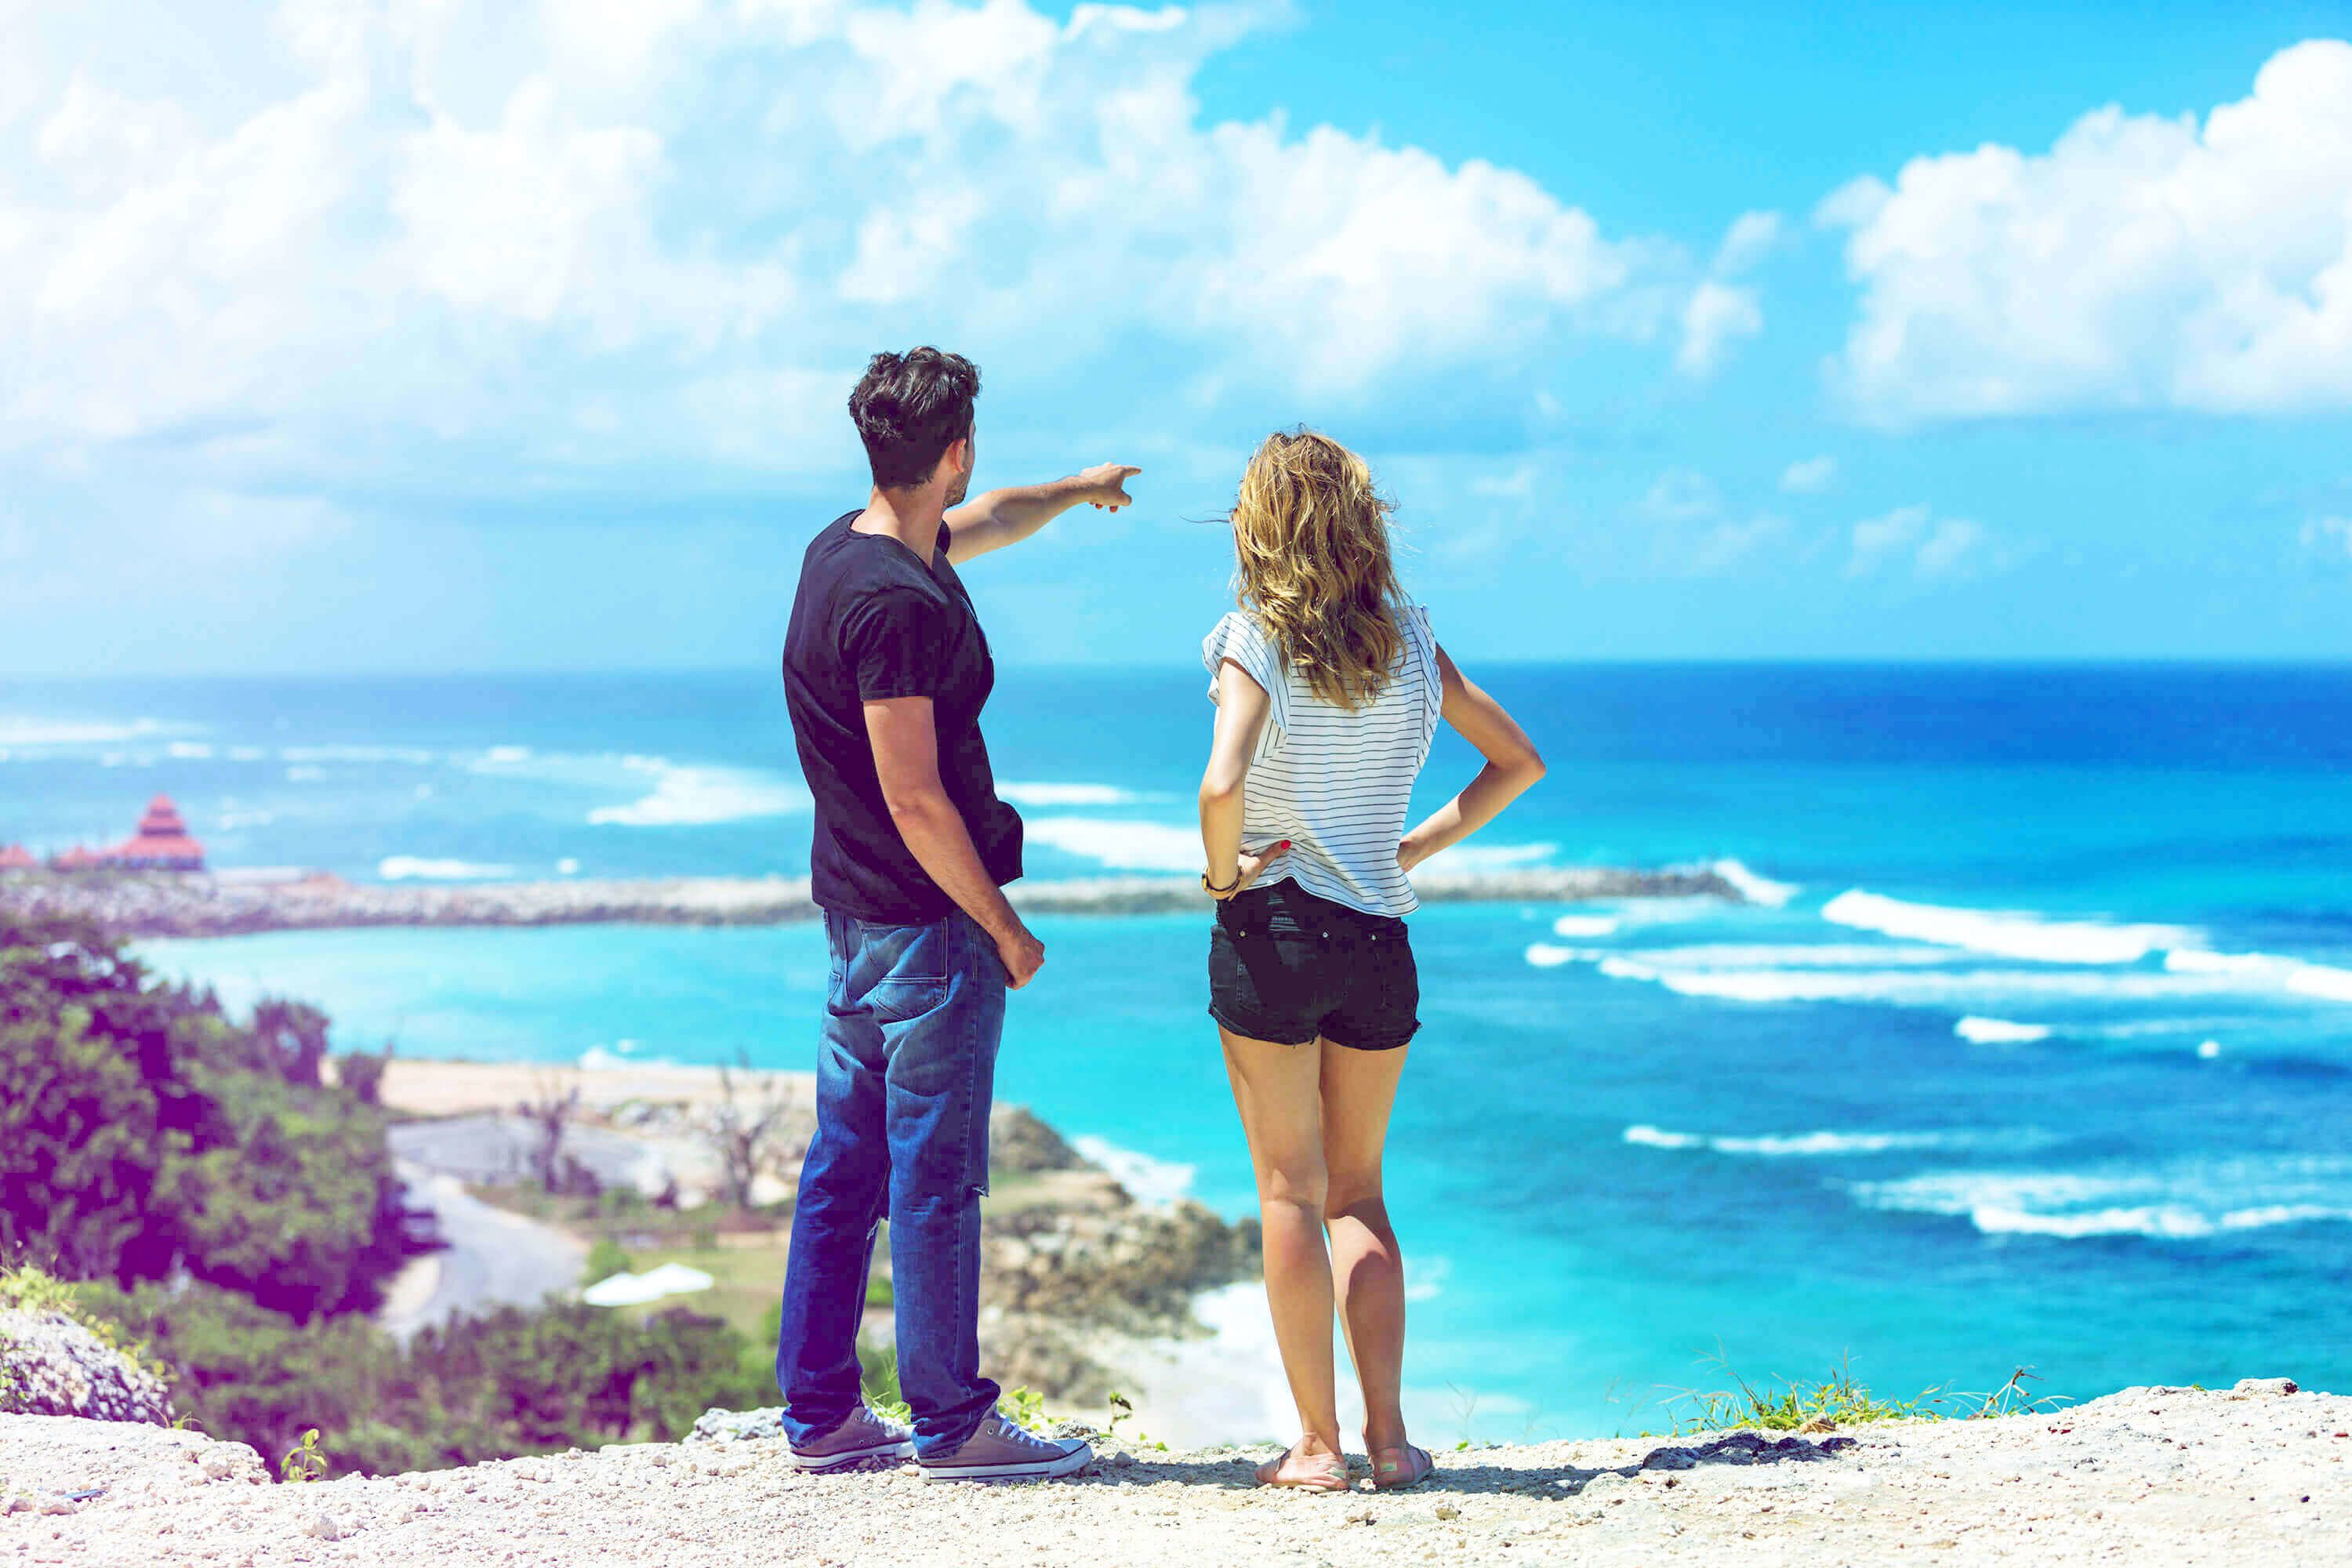 Sightmatching - A dating trend for solo globetrotters